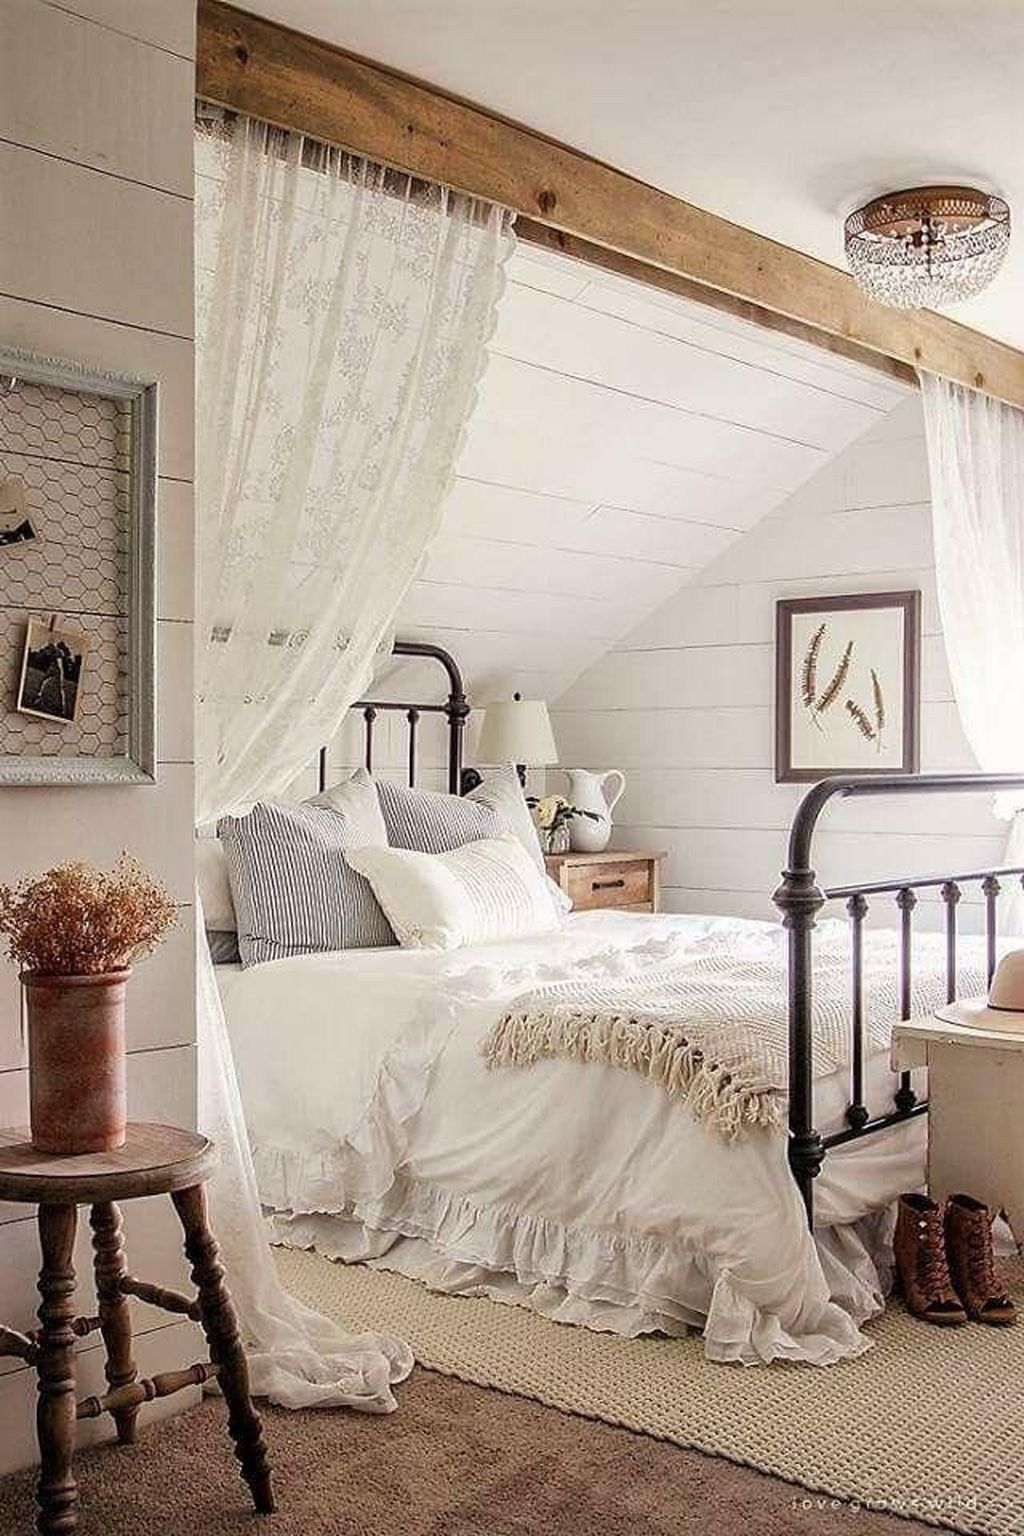 26 The Best Bedroom Decor Ideas With Farmhouse Style Rustic